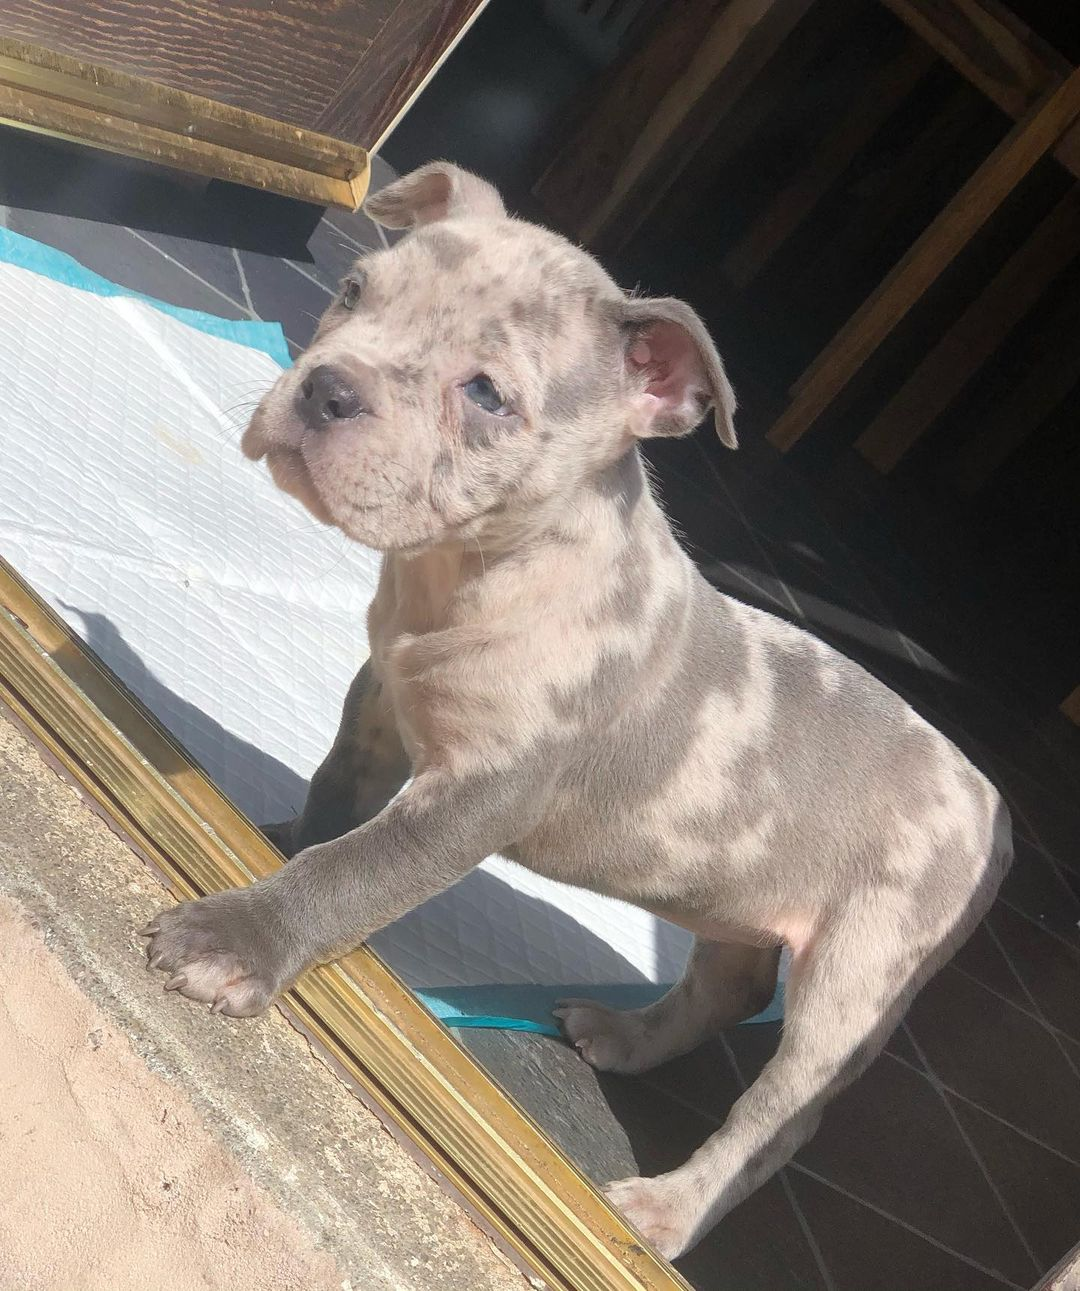 american bully puppies for sale near me, american bully pocket, american bully for sale near me, micro american bully, american bully for sale $900, pocket american bully-micropocketbully